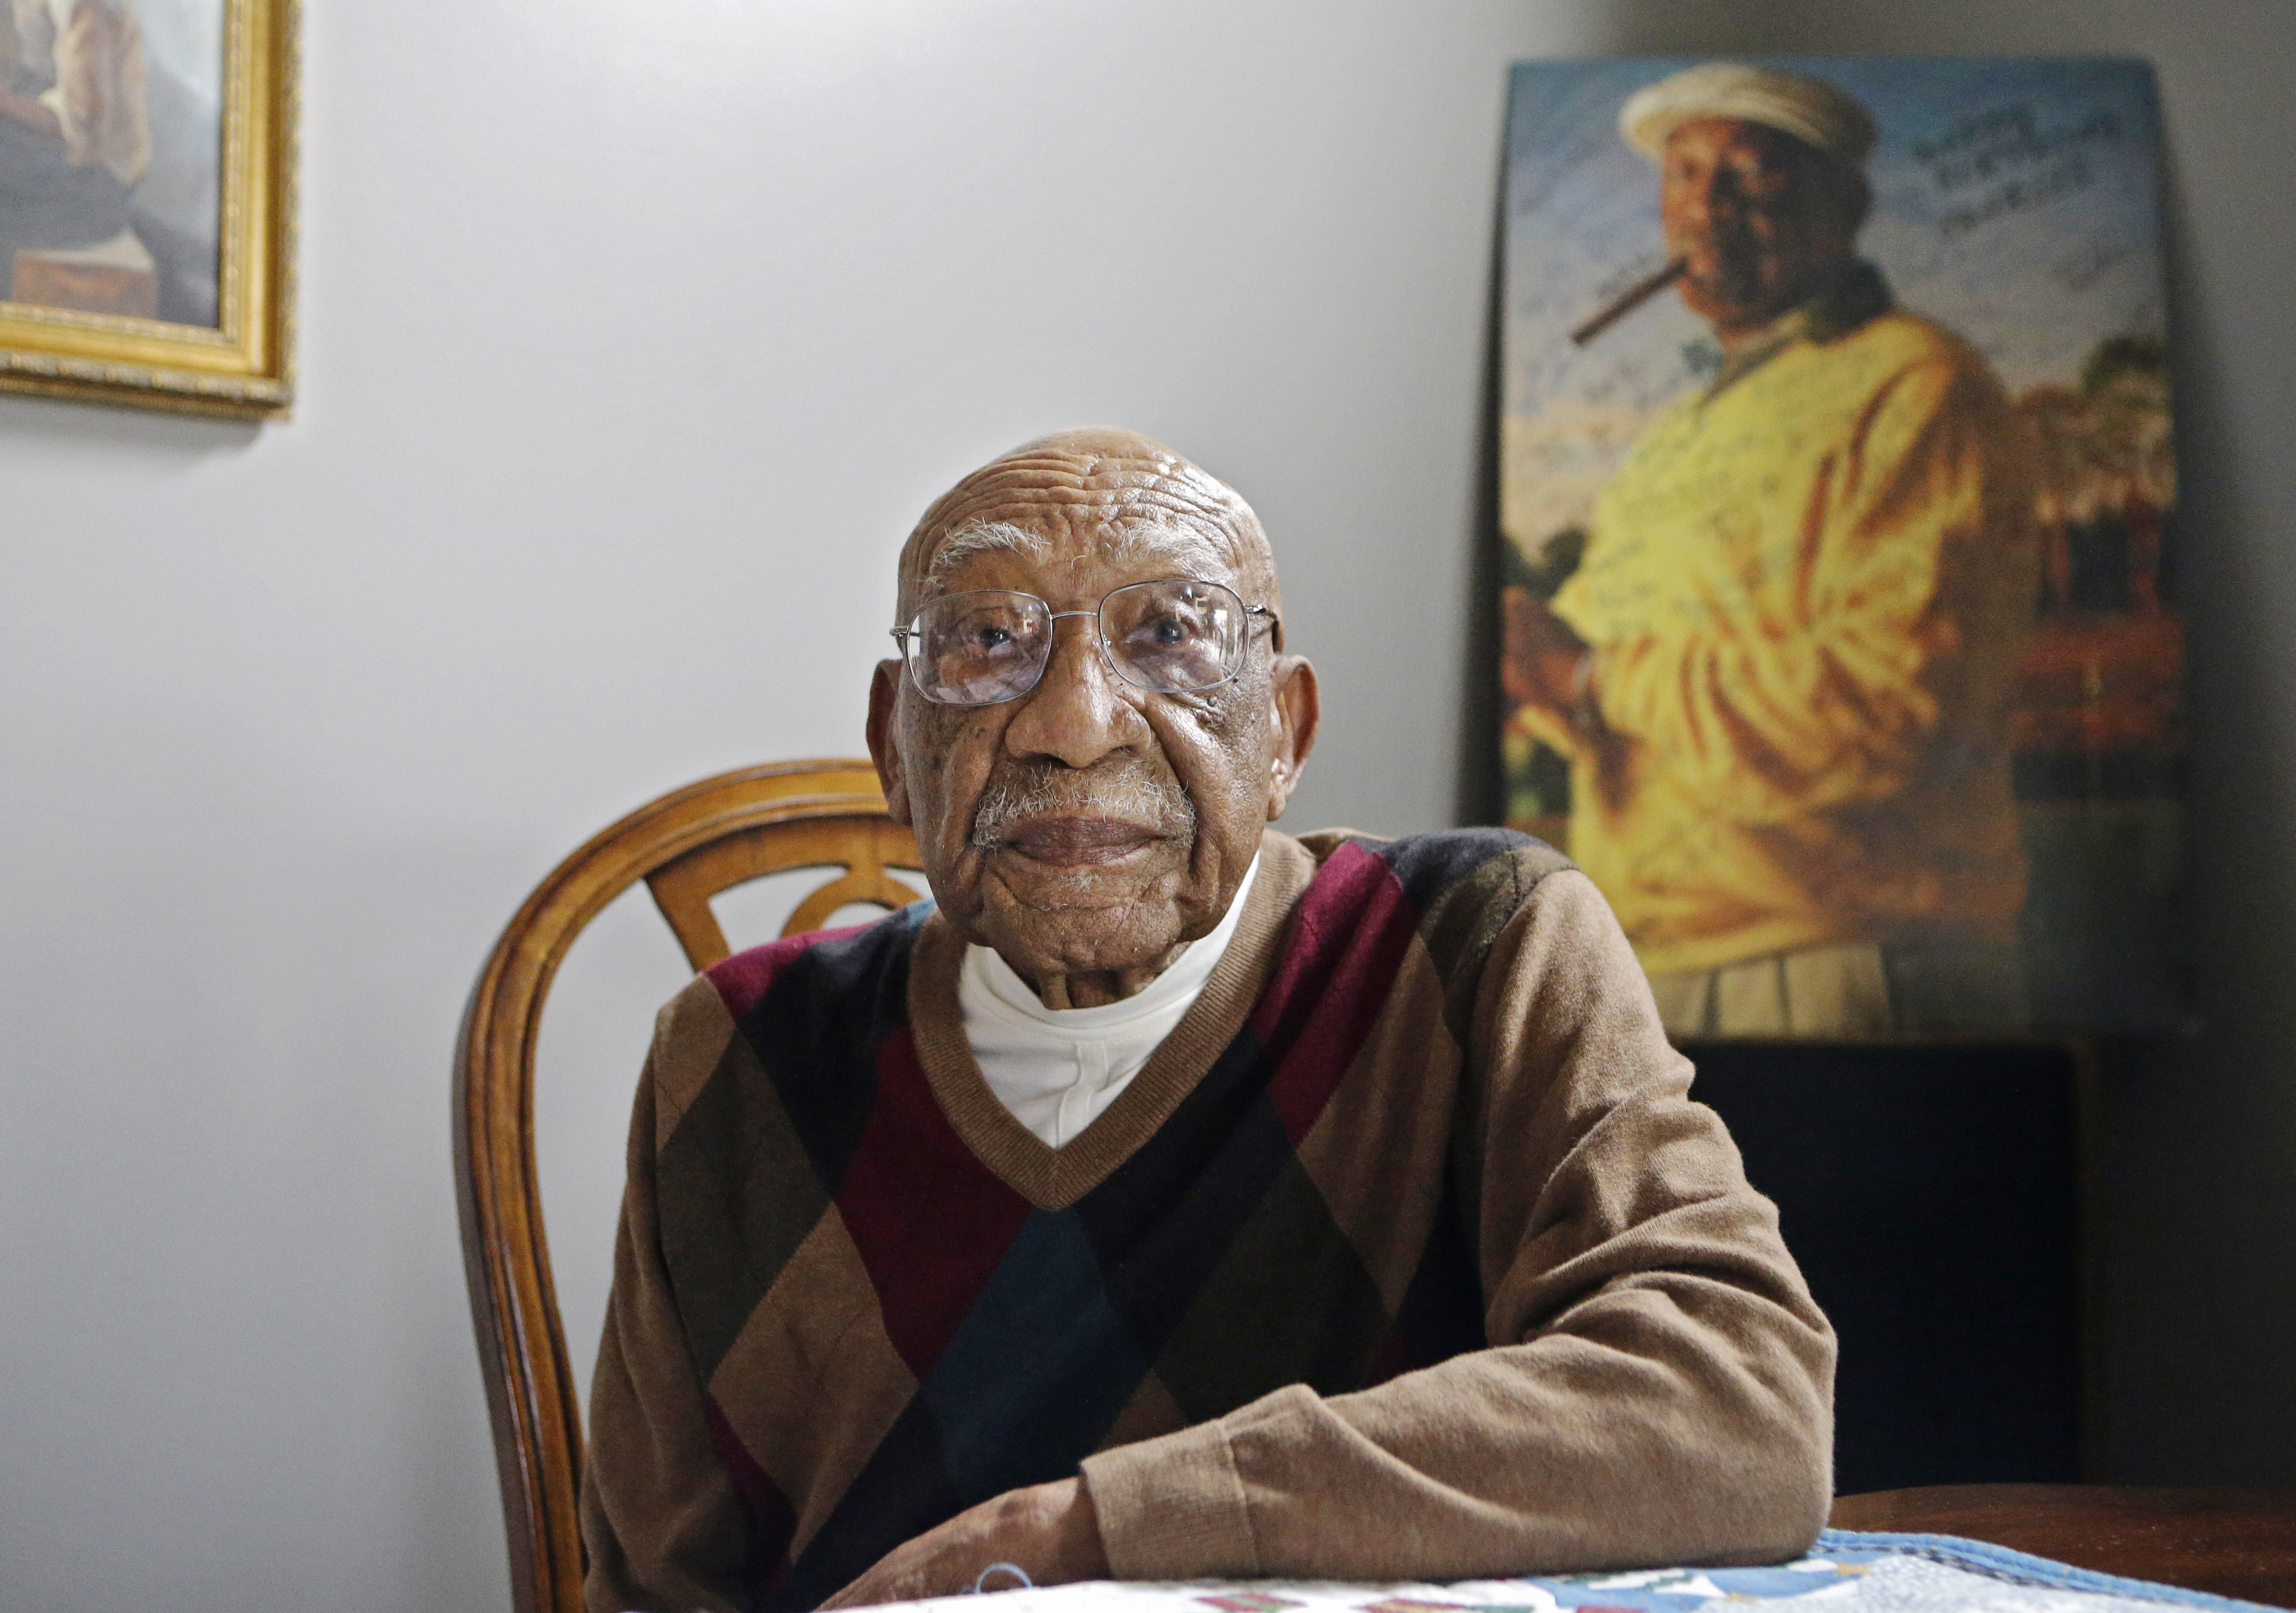 Former PGA golfer Charlie Sifford sits in the dining room of his home in Brecksville, Ohio on Nov. 13, 2014.